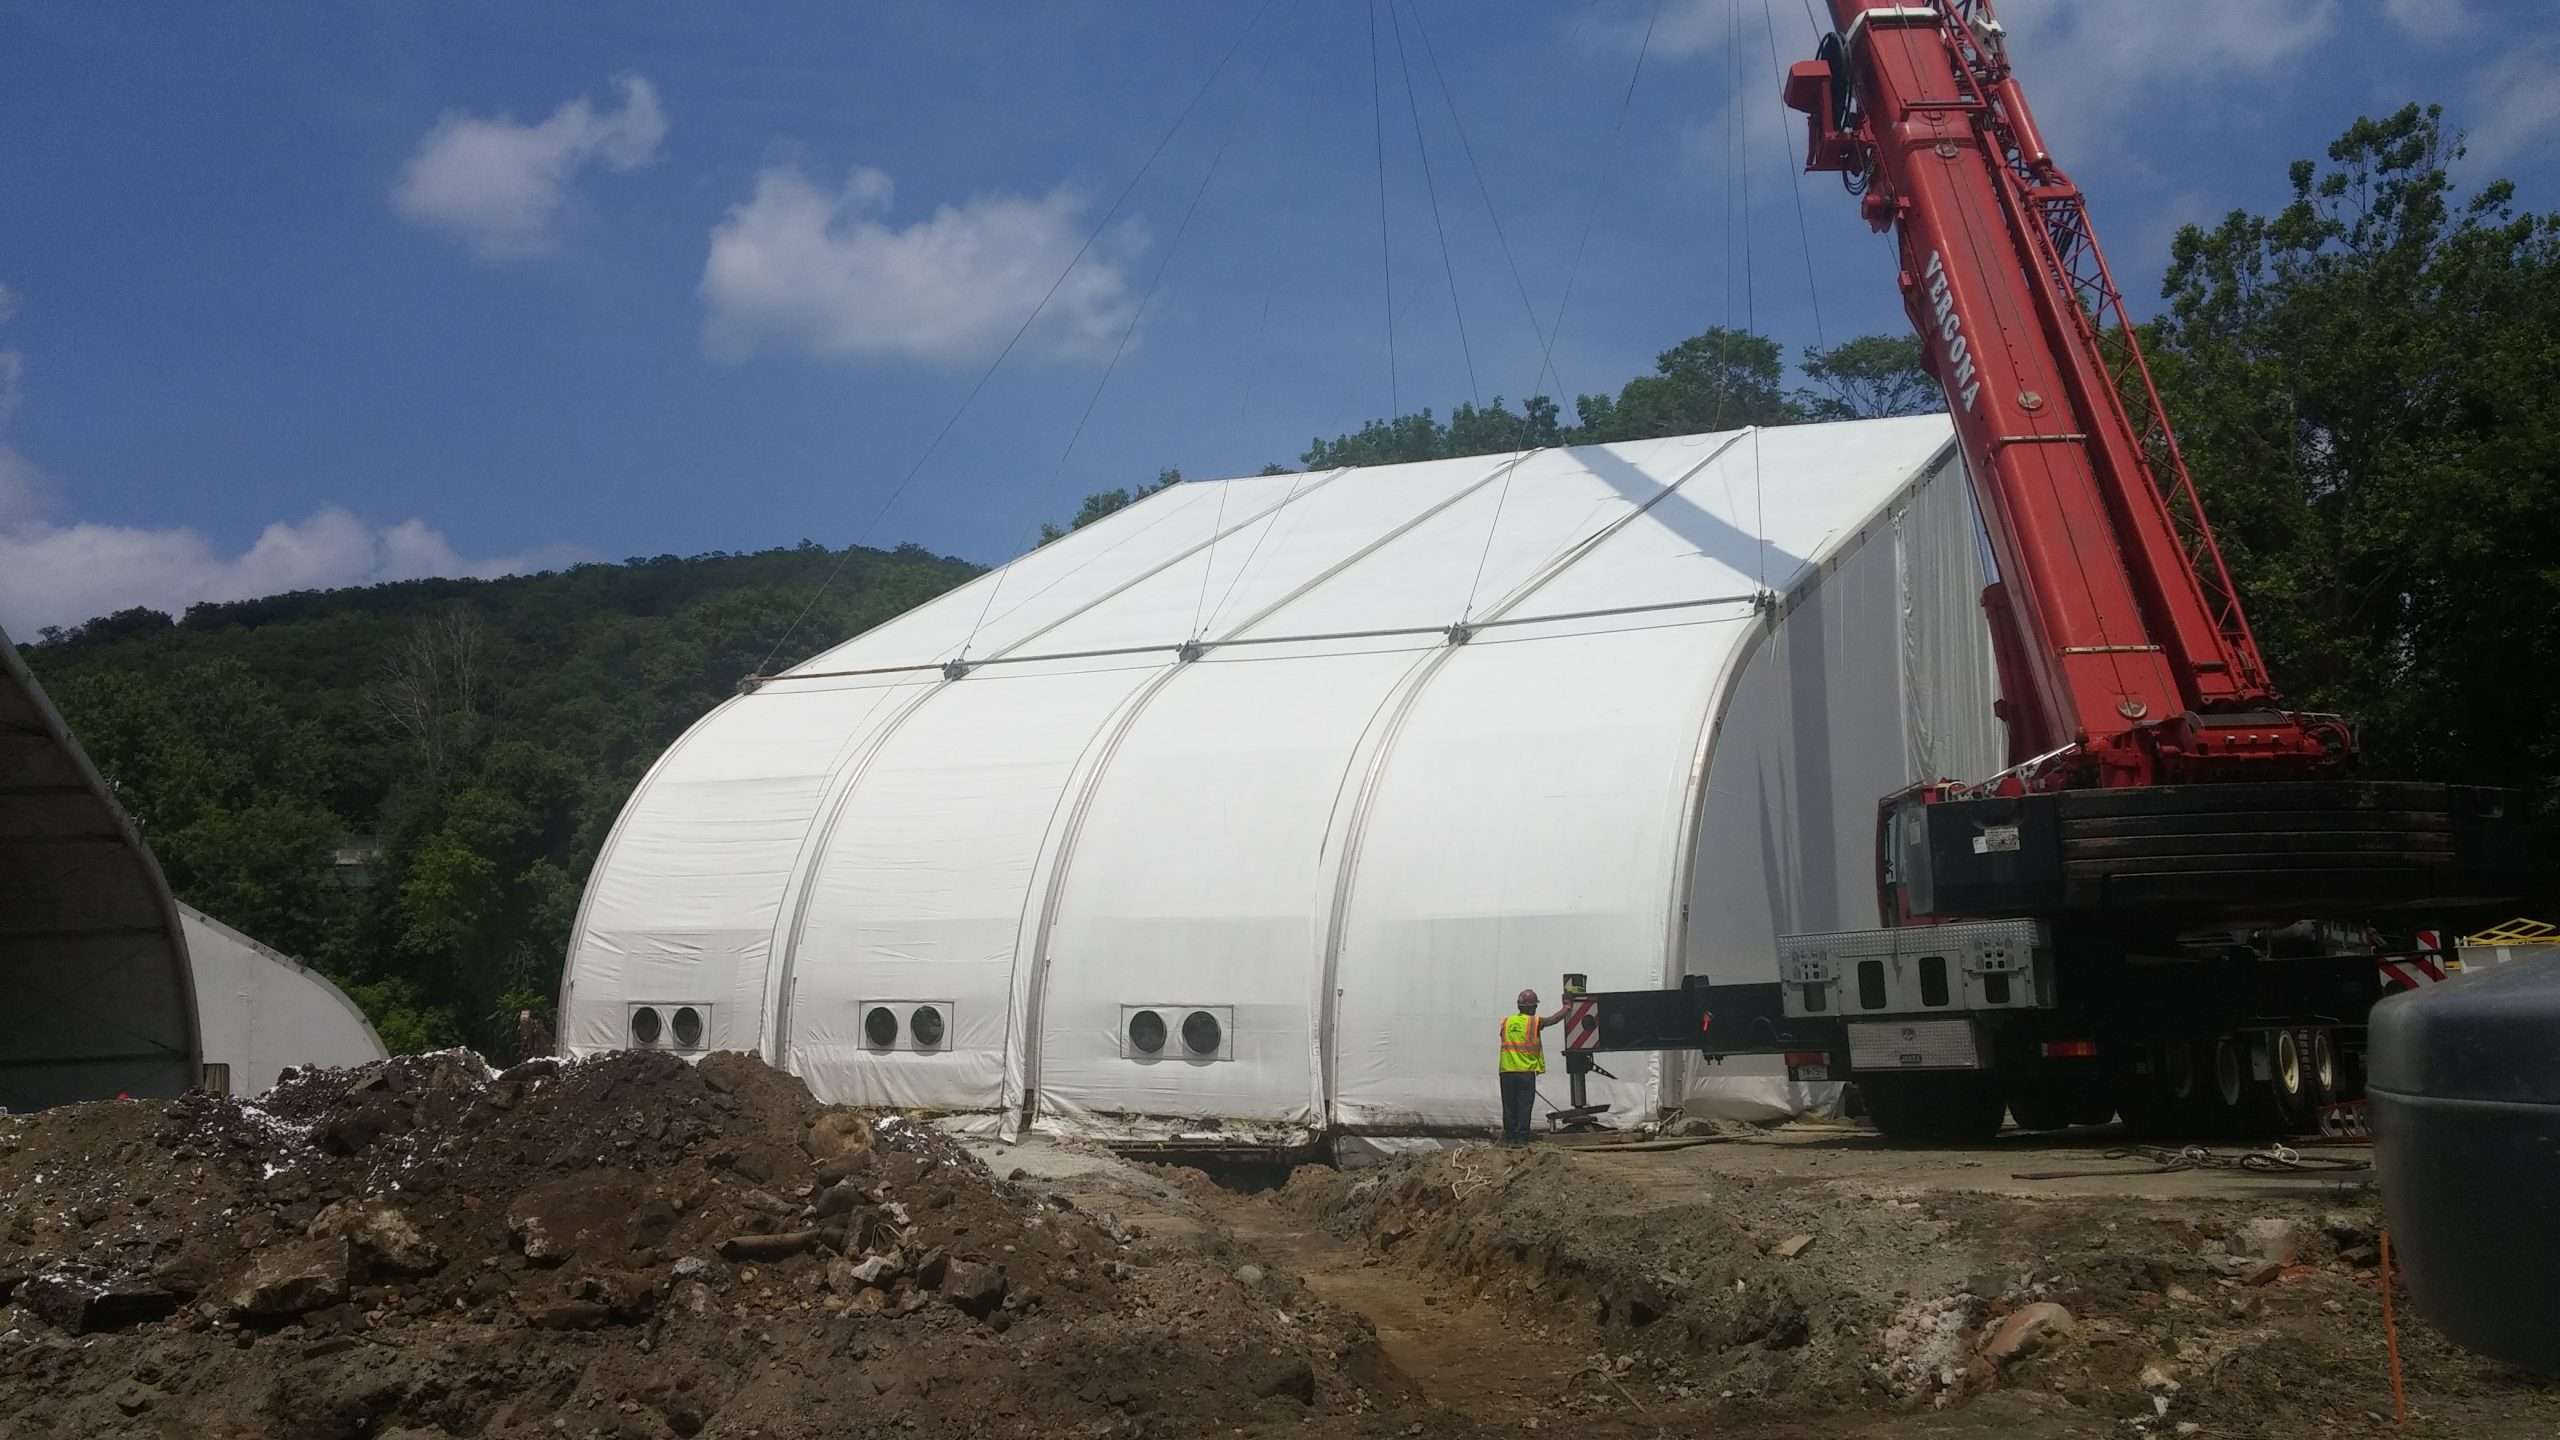 Tension Fabric Structure in use a at mining operation location